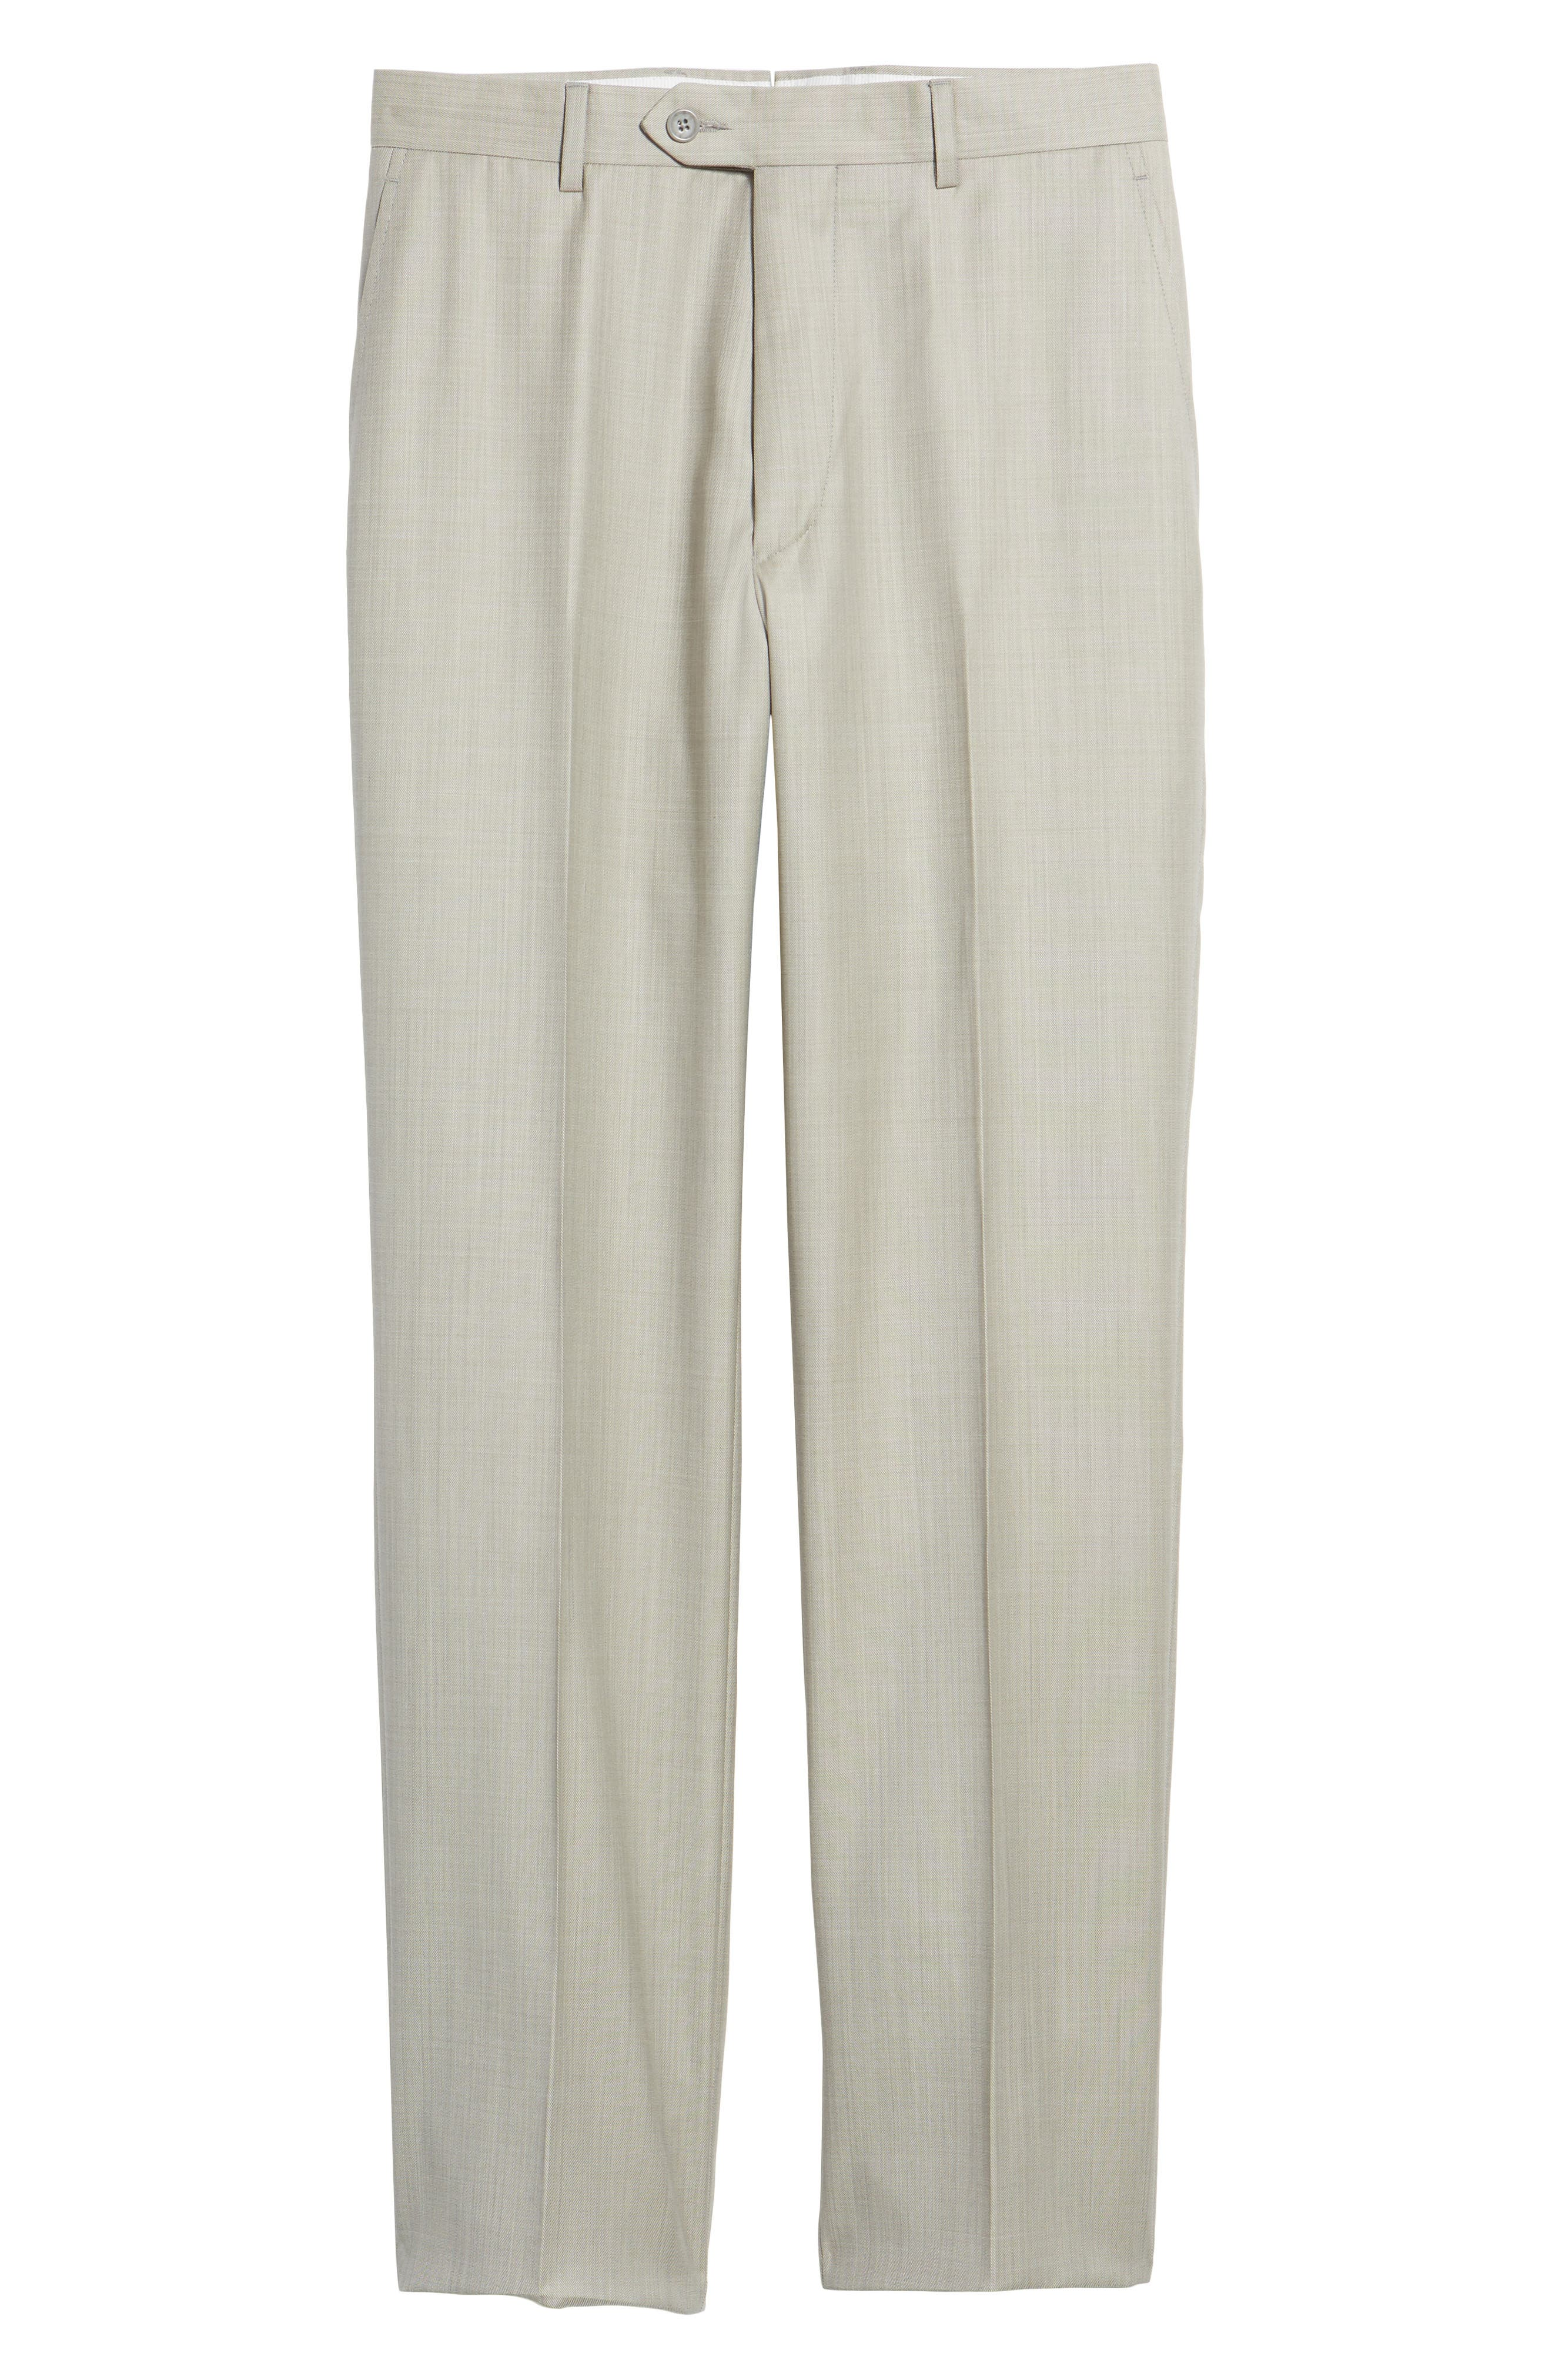 Flat Front Solid Wool Trousers,                             Alternate thumbnail 6, color,                             Sand